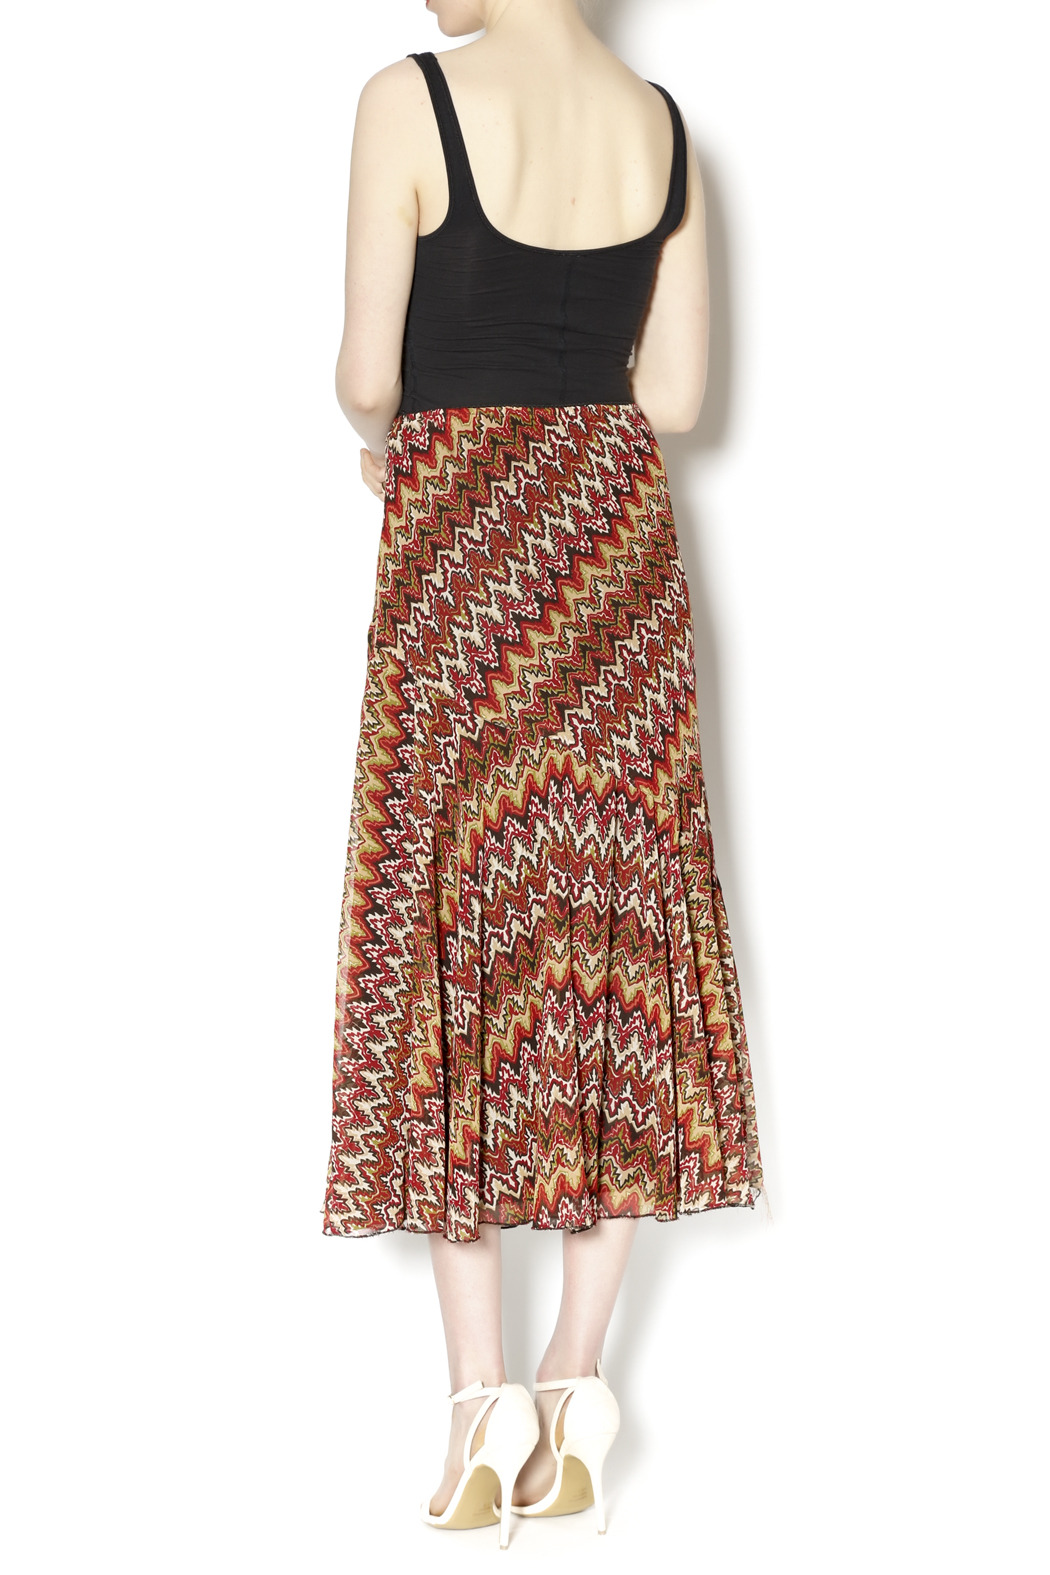 Emma G Long Ruffled Skirt from Georgia by The Dragonfly Boutique u2014 Shoptiques